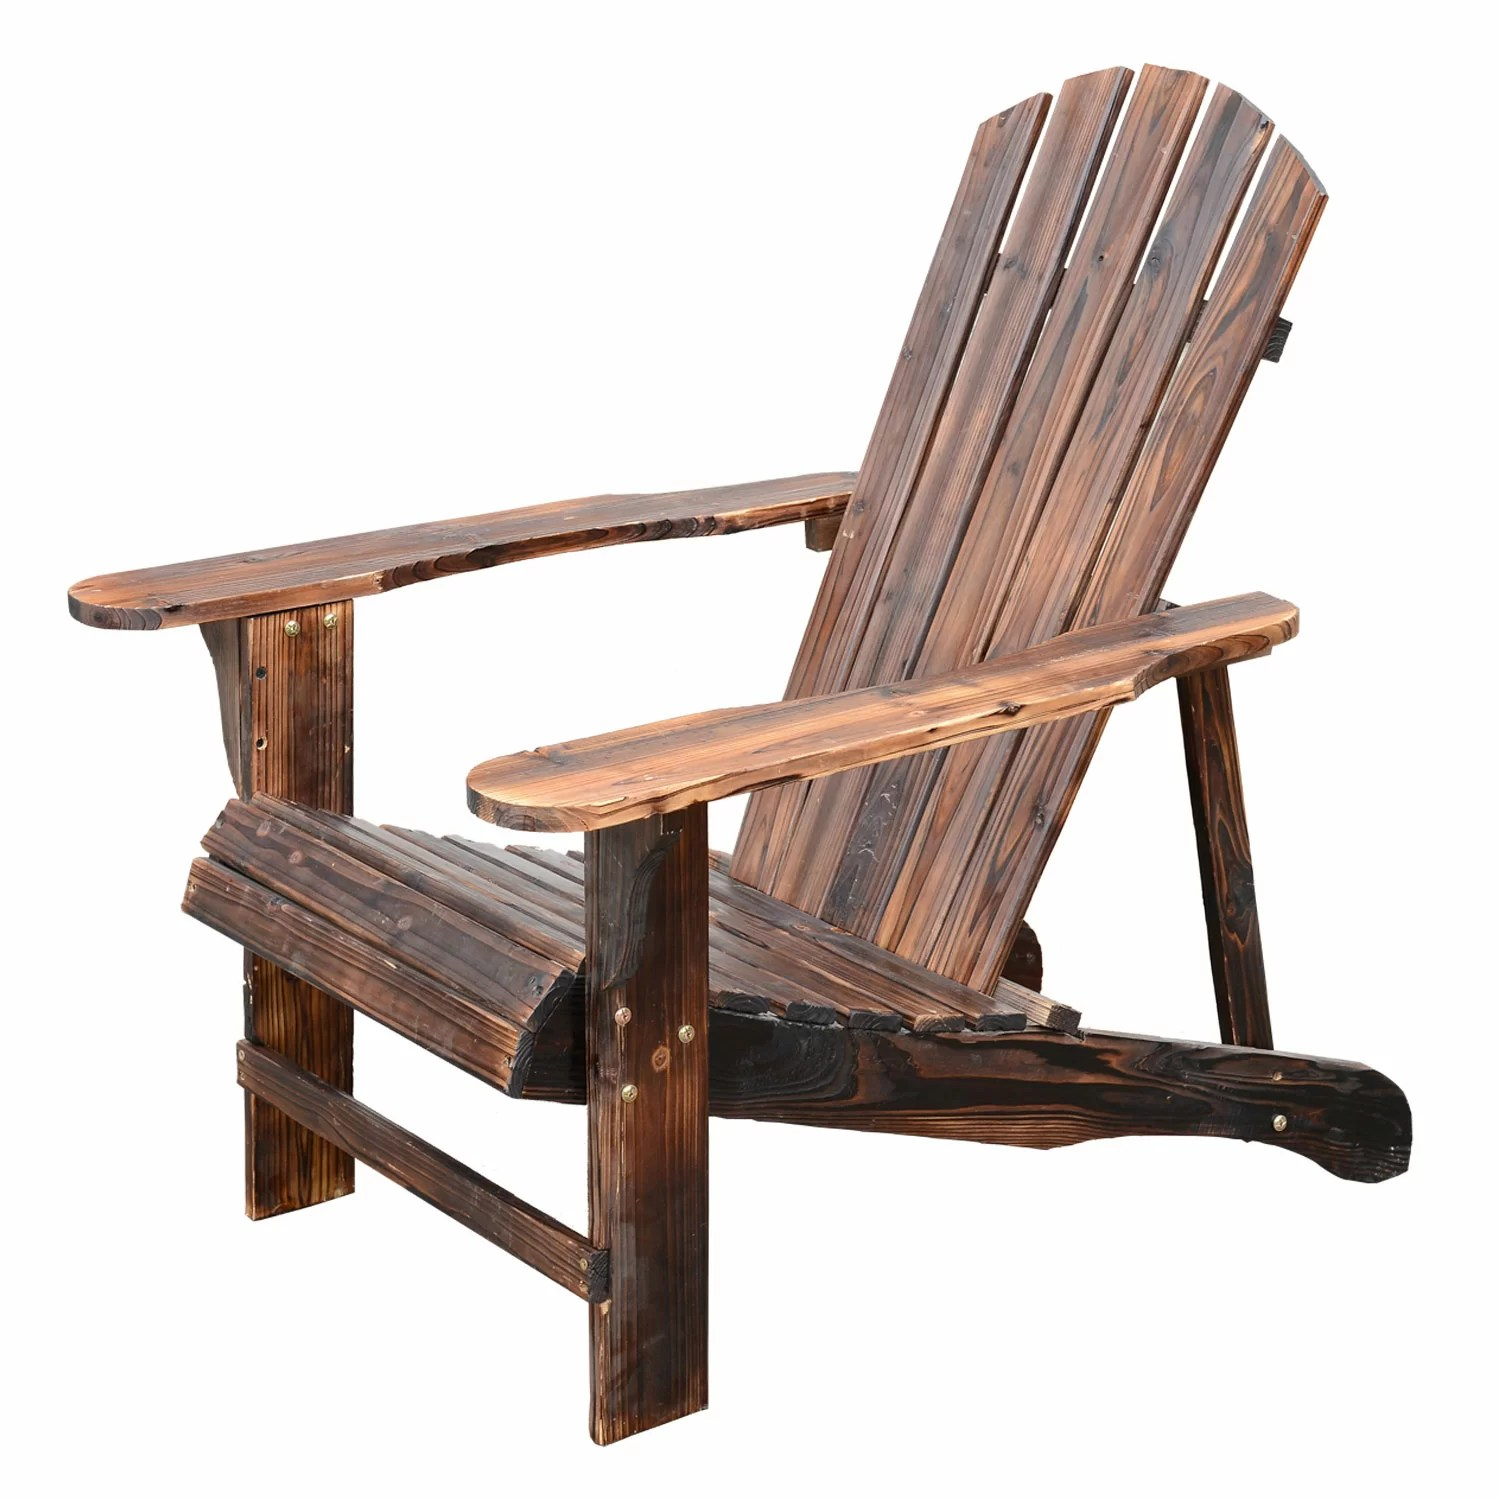 wooden lounge chairs norwegian posture chair outsunny adirondack outdoor patio